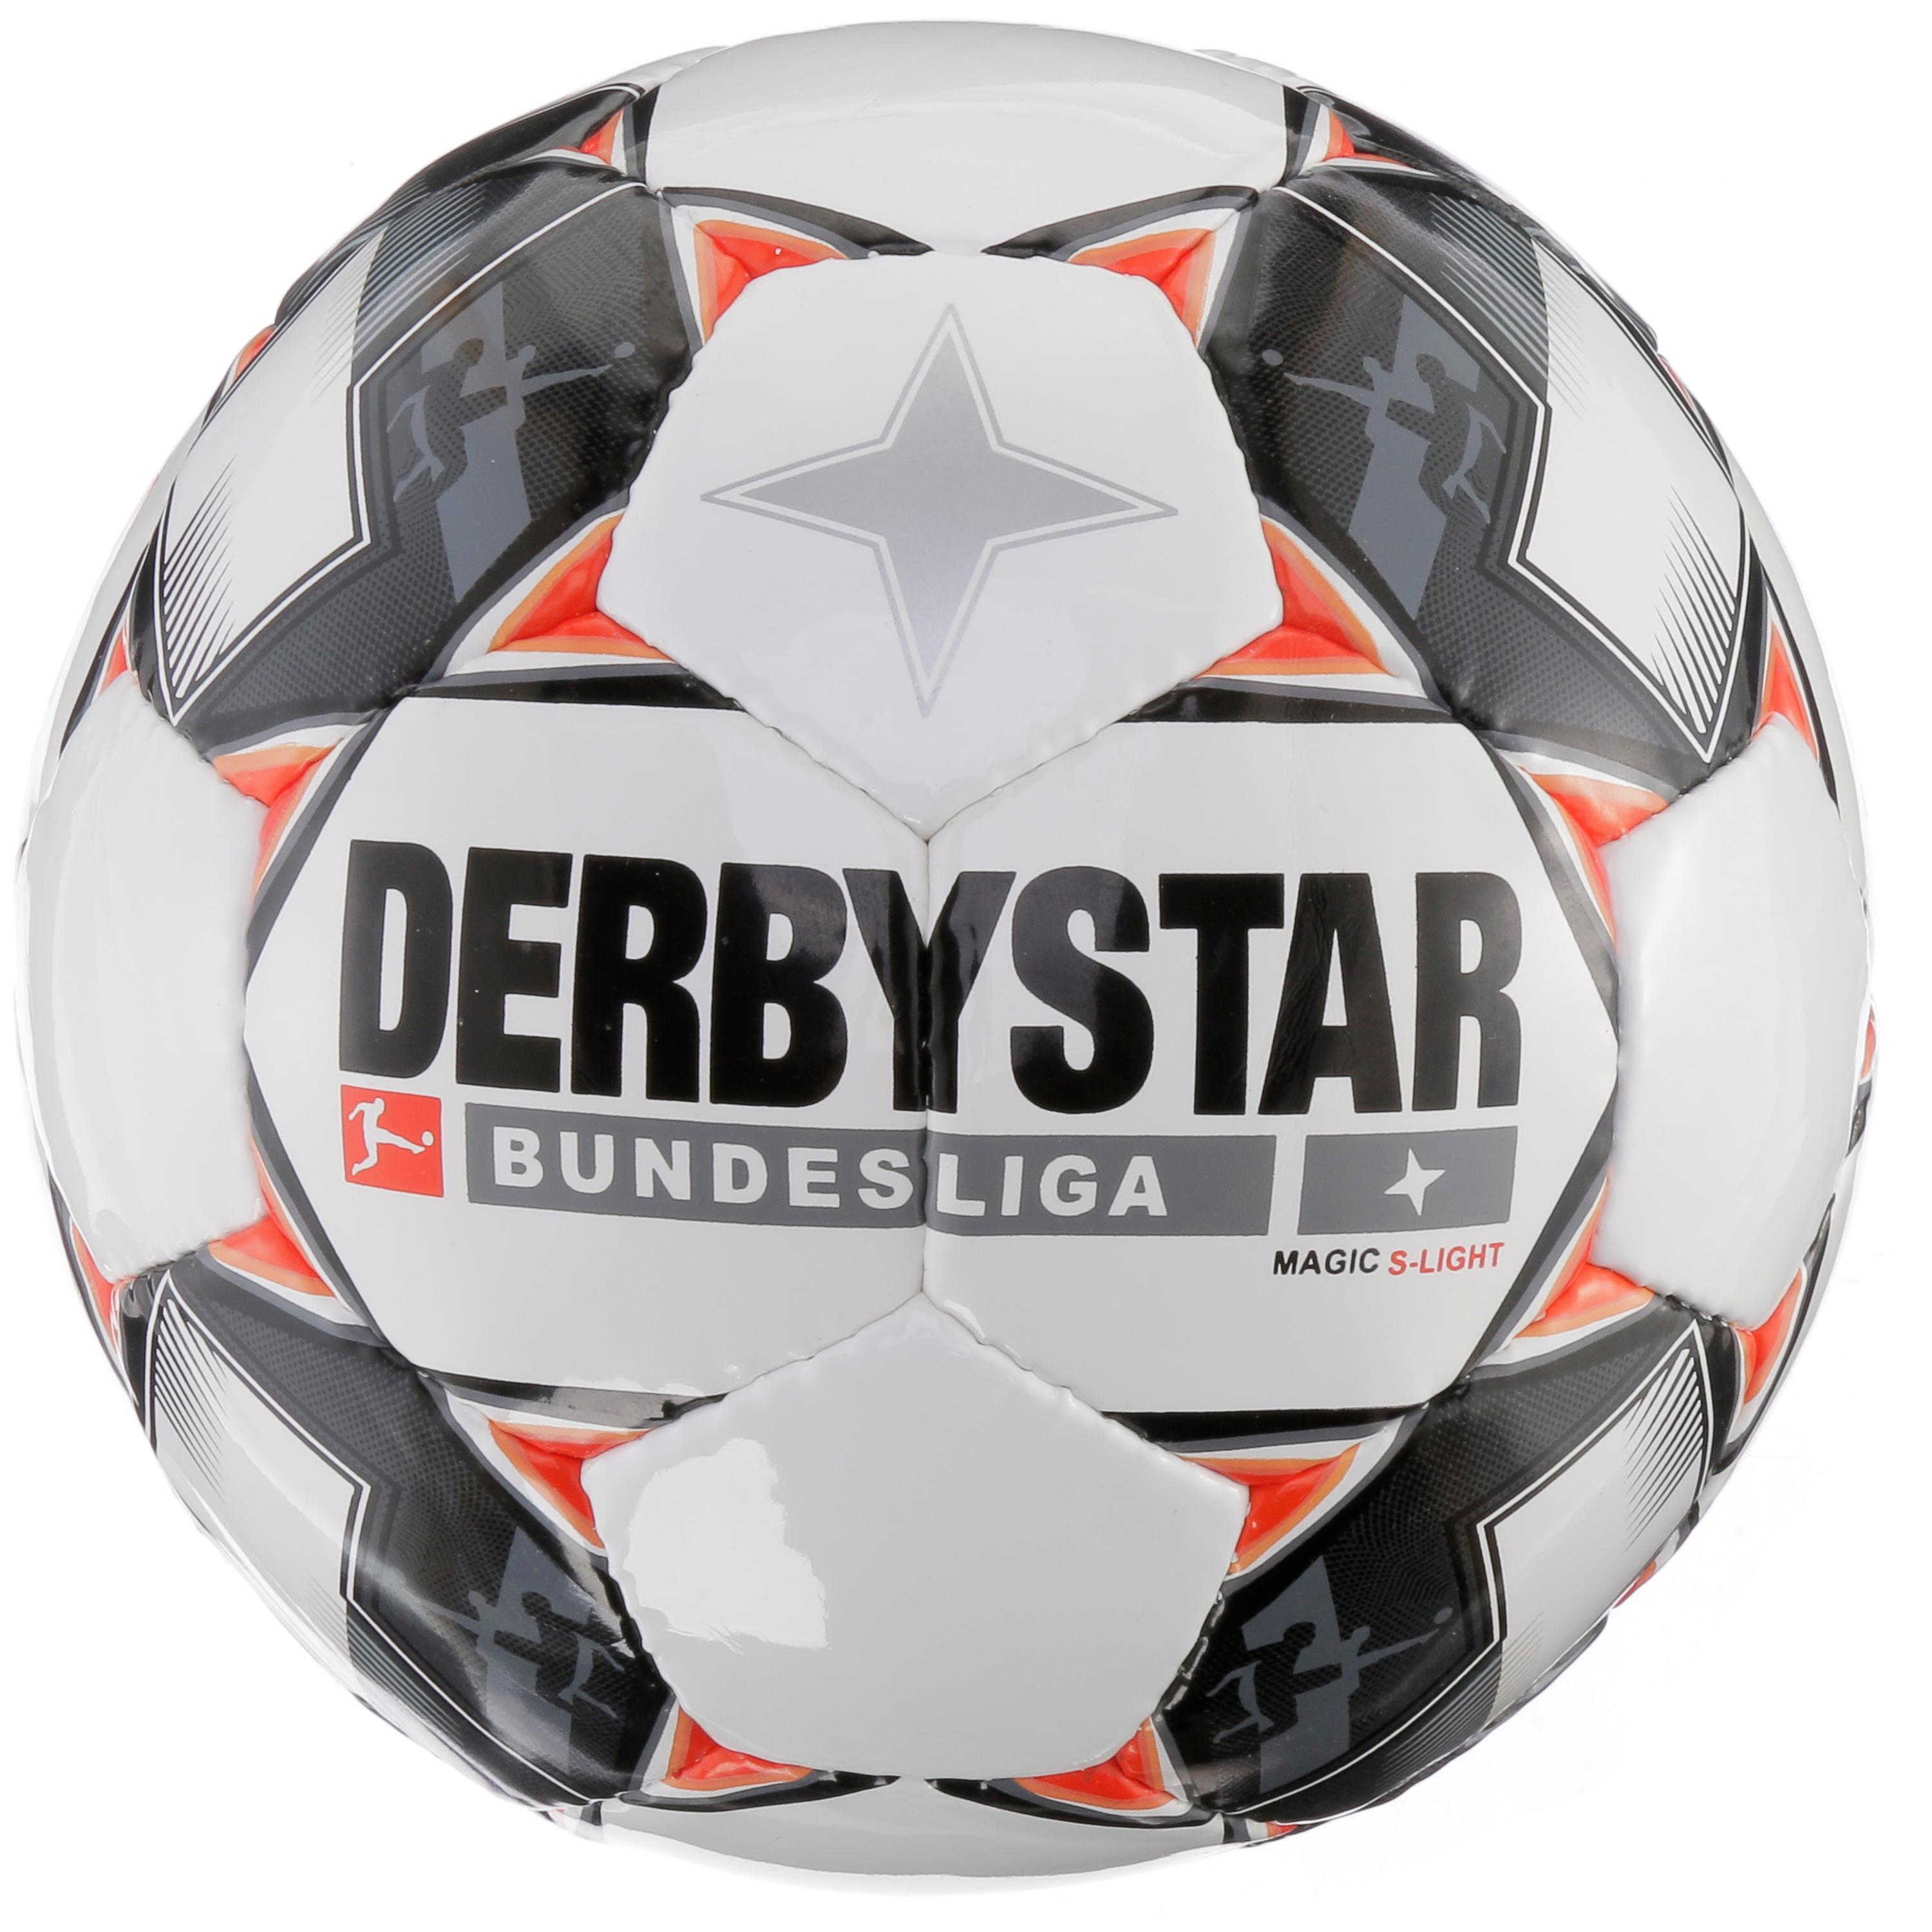 Derbystar Magic S-Light Bundesliga 18/19 290gr Fußball